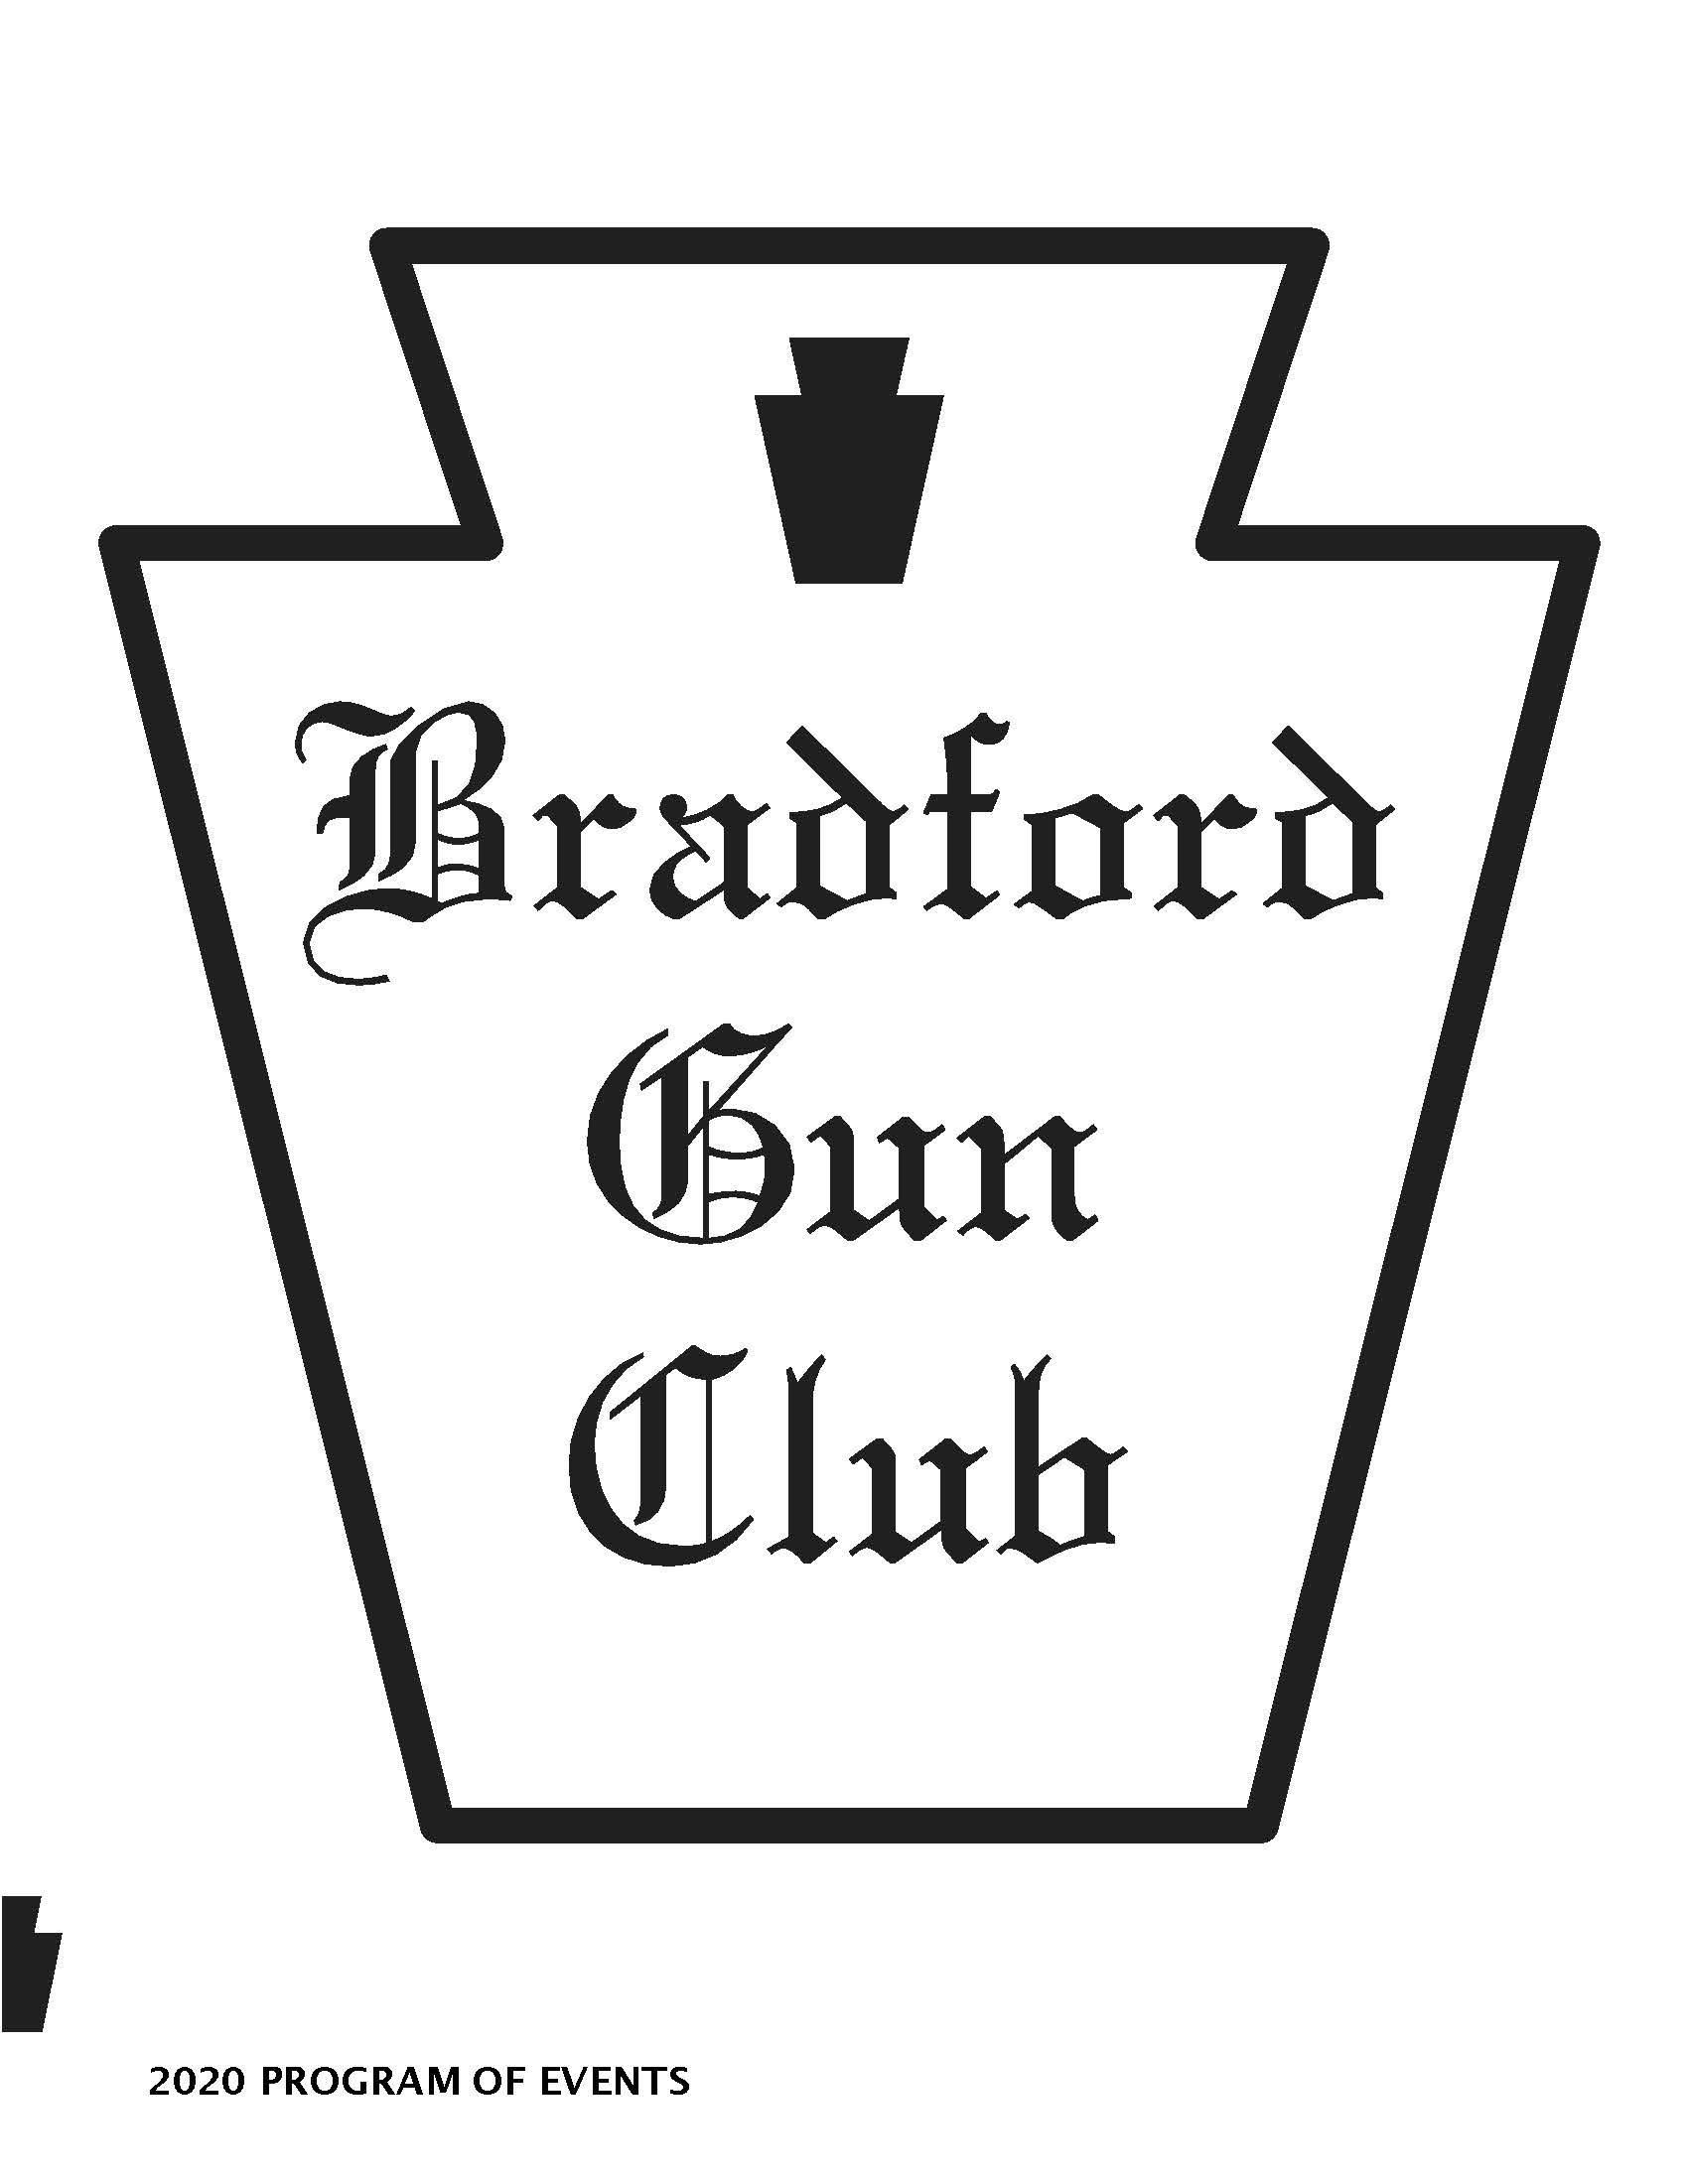 http://bradfordgunclub.com/wp-content/uploads/2020/05/BGC-2020-Program-book-Cover.jpg